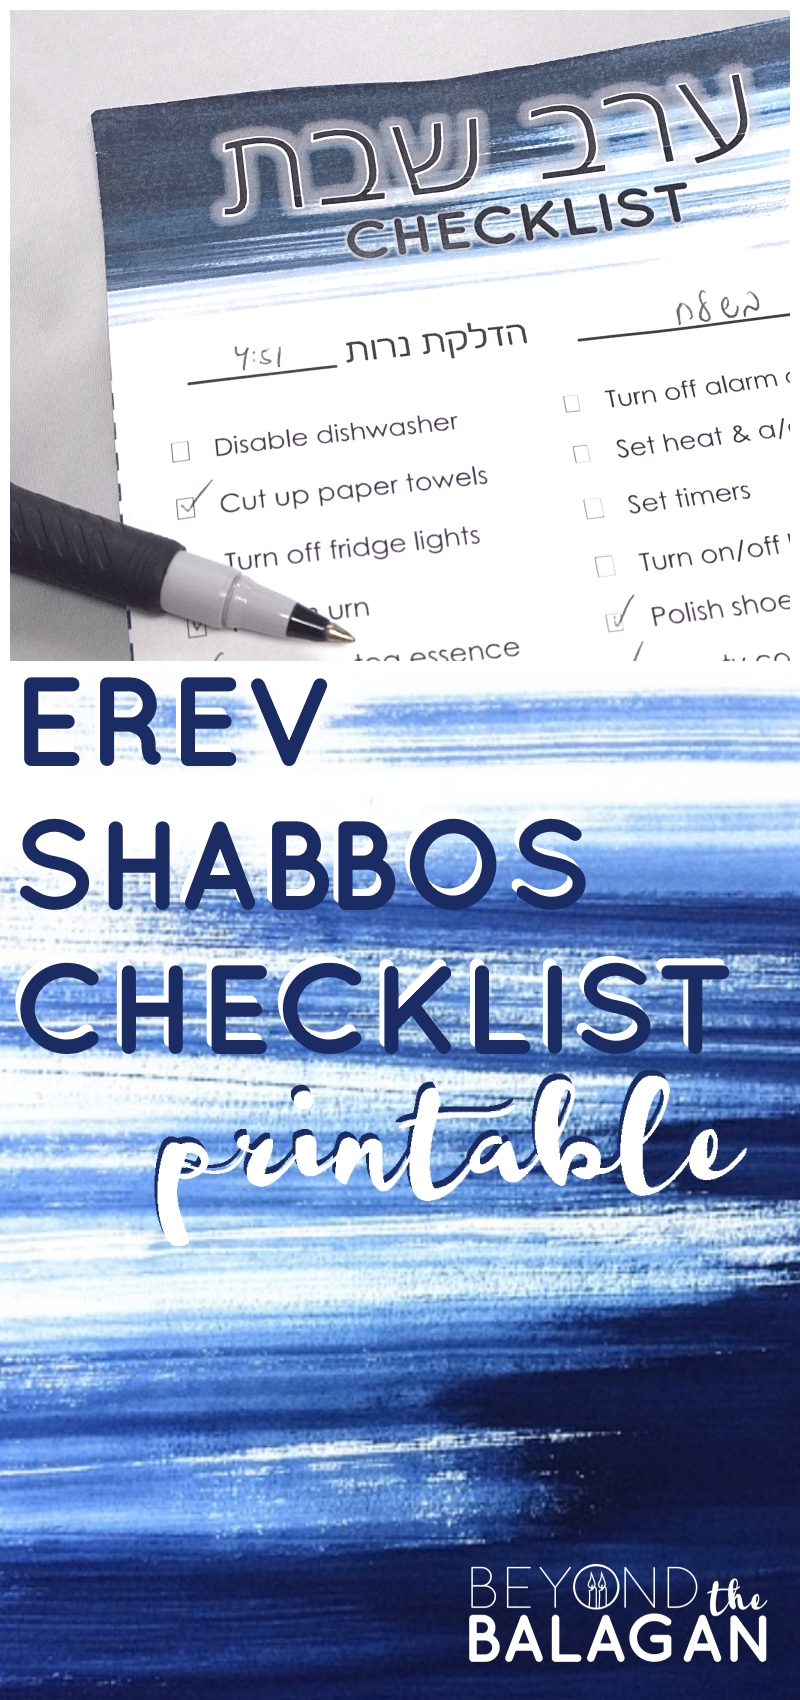 Keep your Fridays organized with this handy Erev Shabbos checklist. This free printable can be turned into a reusable Erev Shabbos checklist that you can use every week, over and over again!